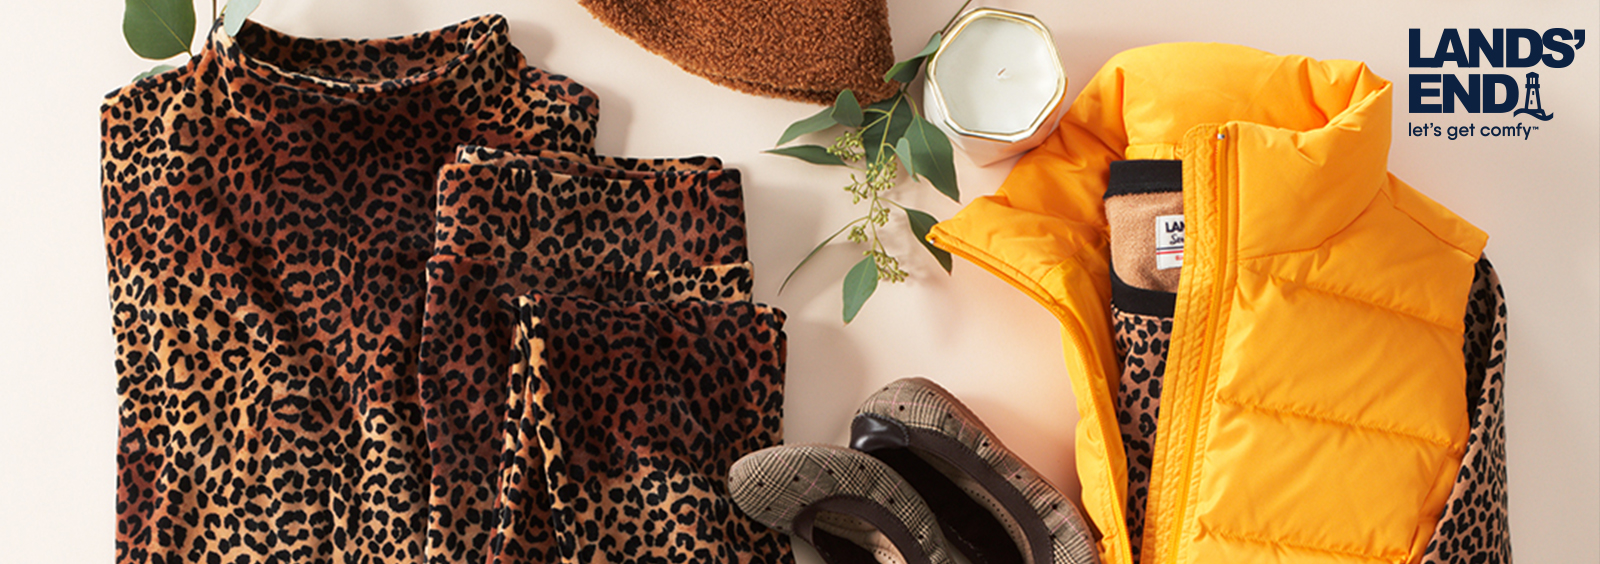 Leopard Vs. Cheetah Print: Know the Difference